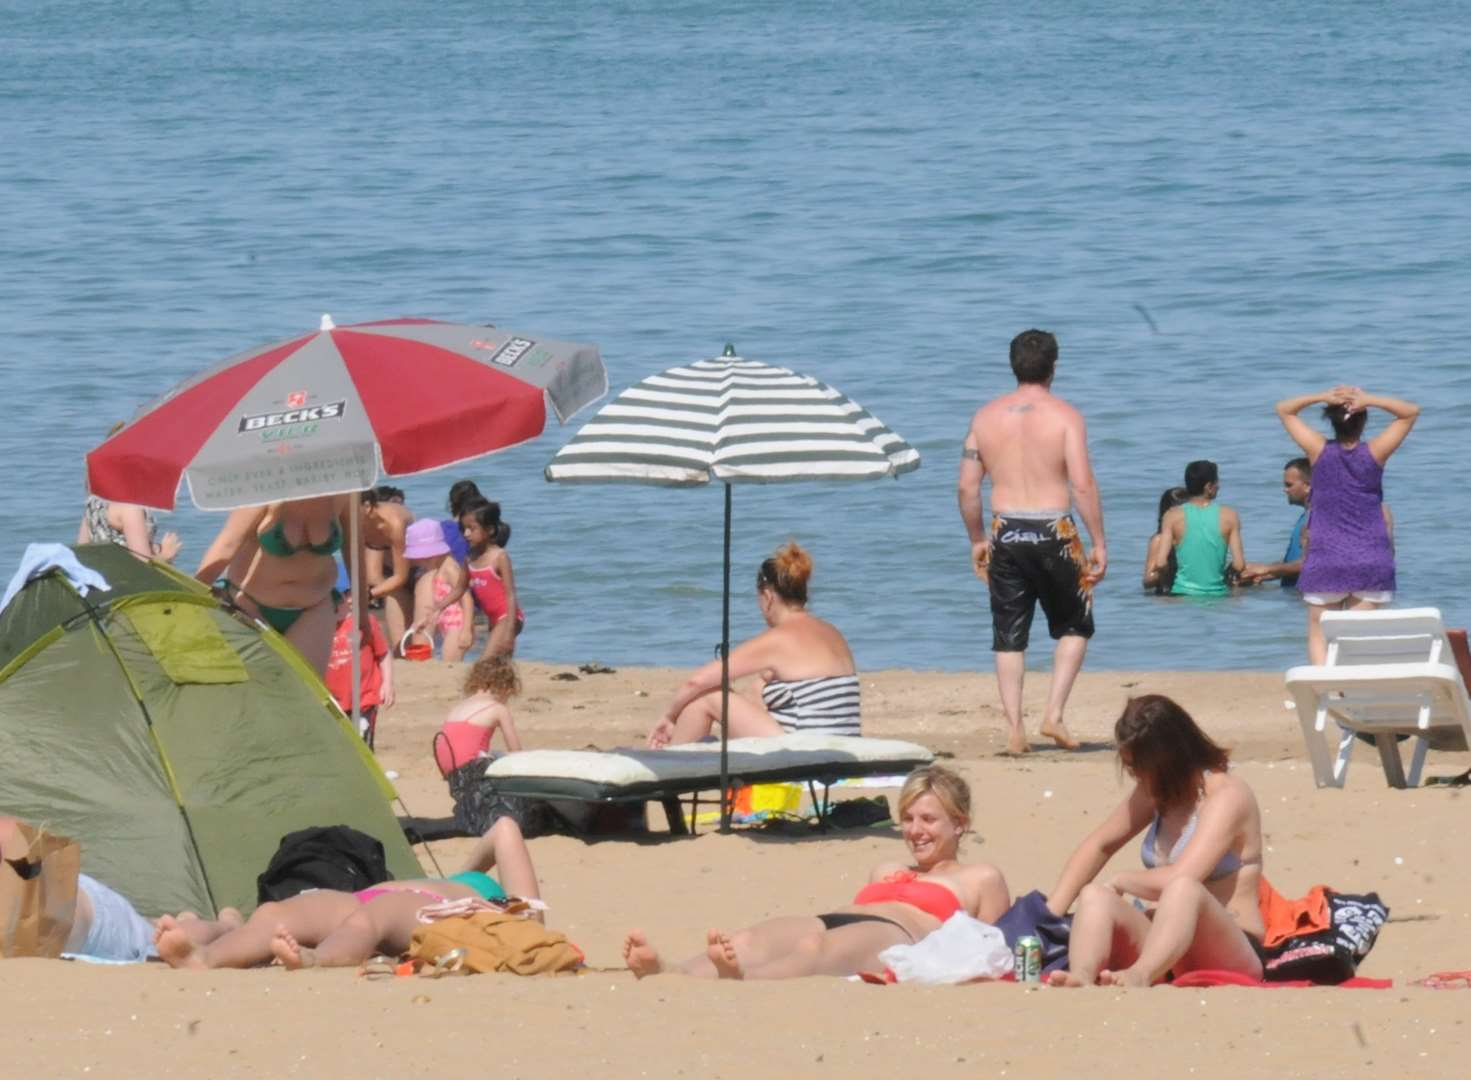 Summer's back! Kent set to swelter in 29c heat